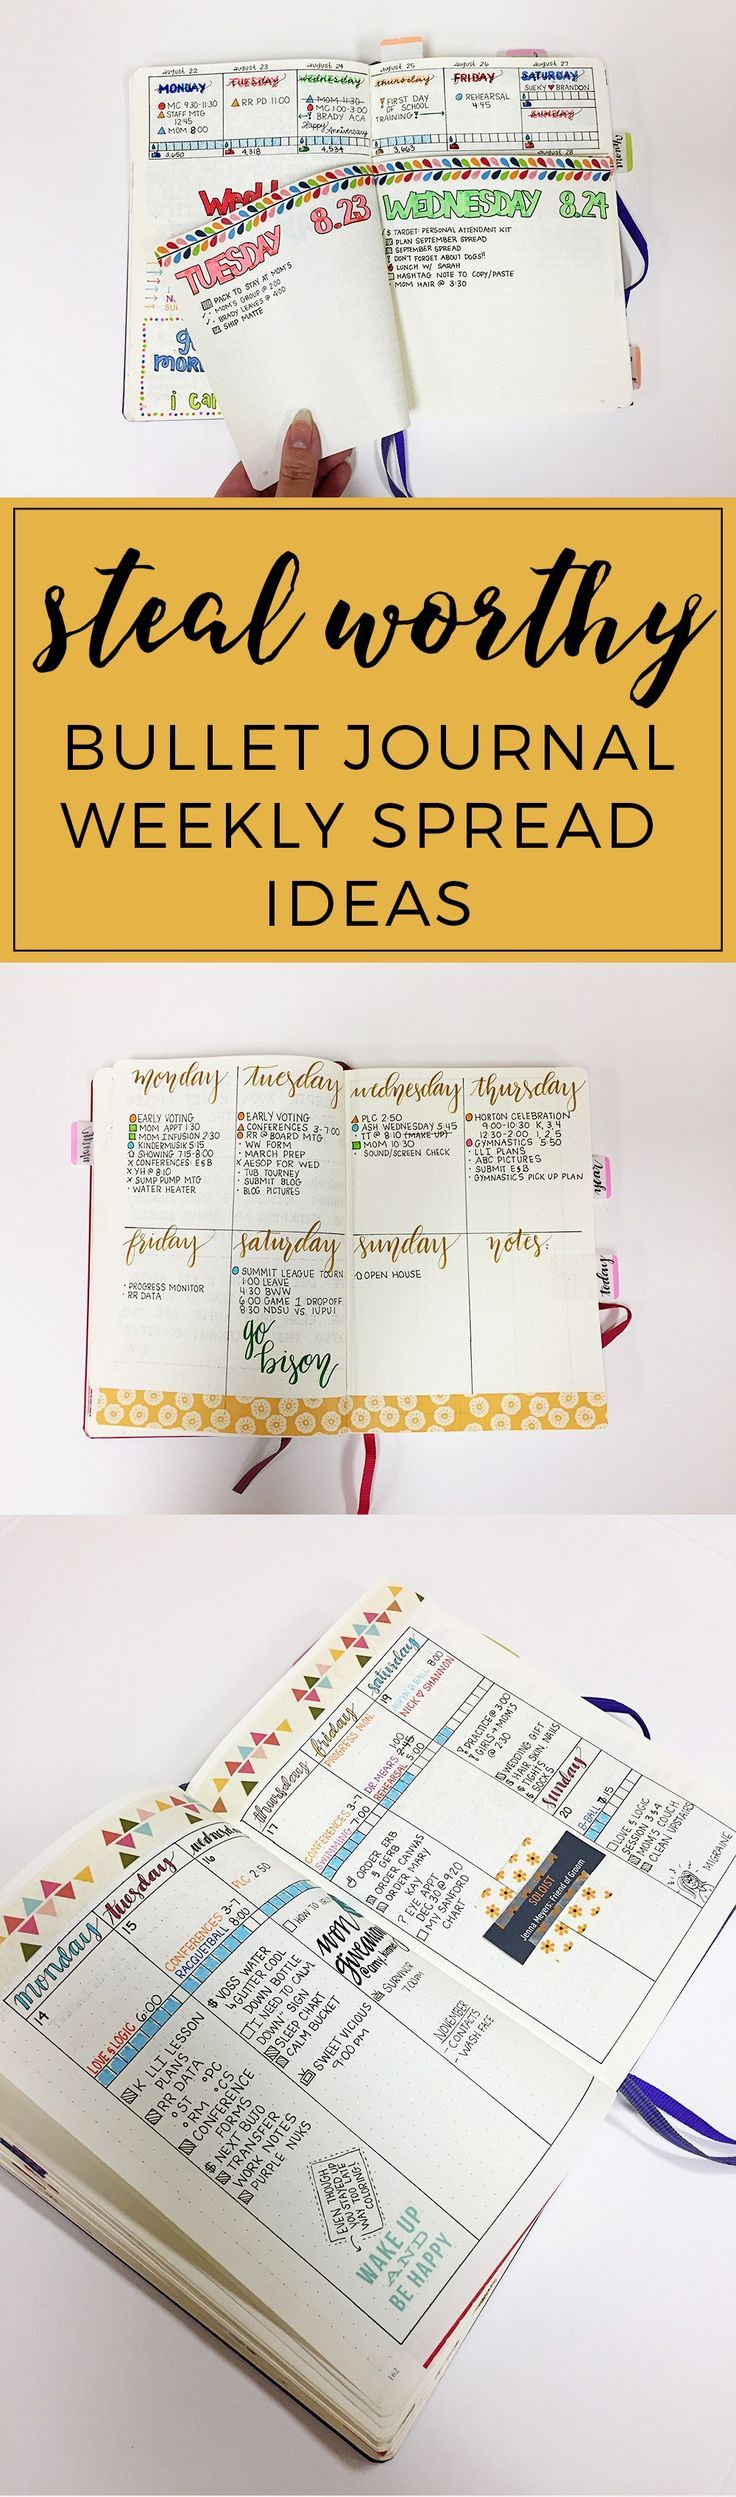 Steal worthy bullet journal weekly spread ideas!!